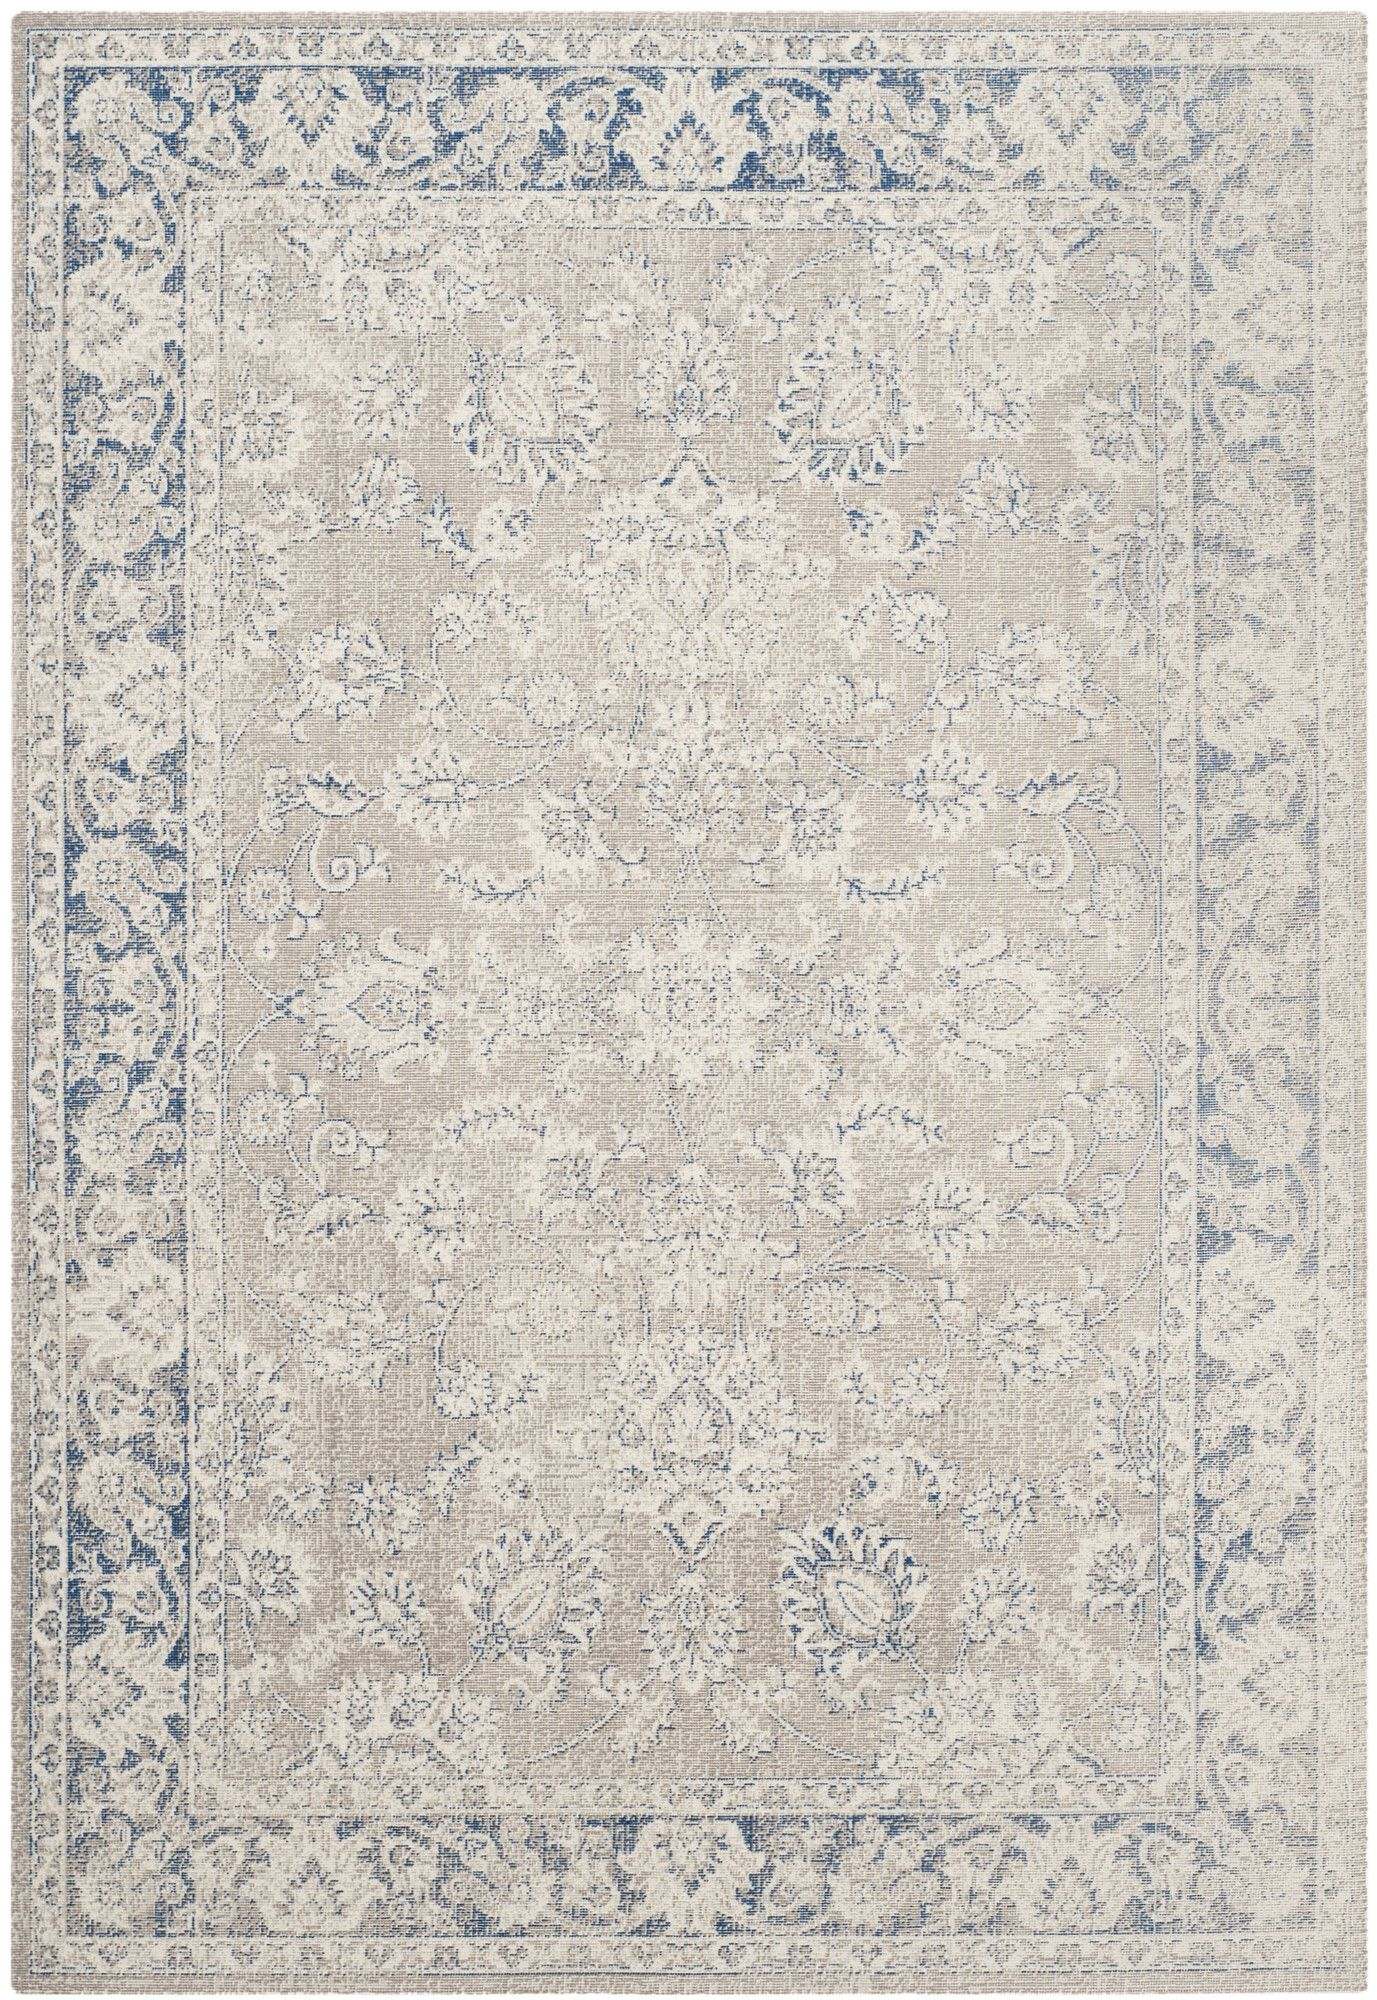 Palaiseur Taupe Area Rug Master Bedroom In 2019 Rugs